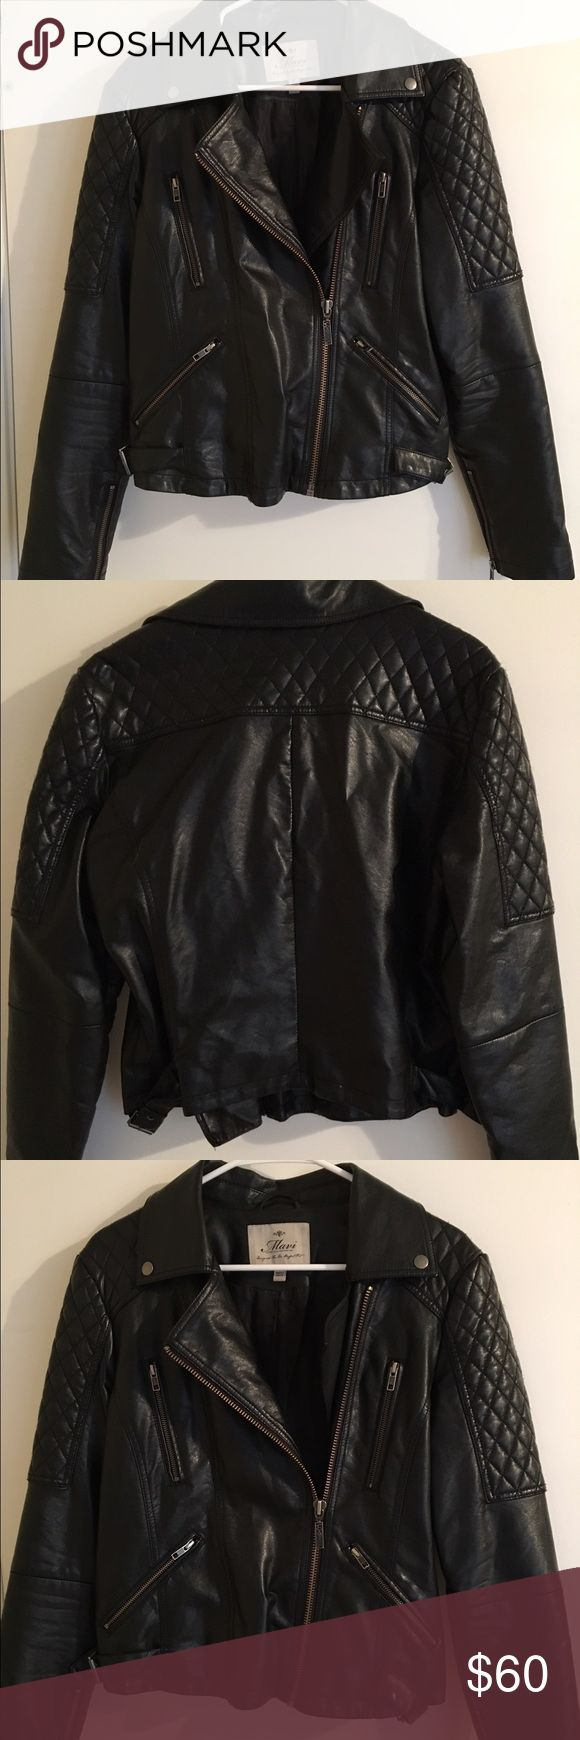 Mavi faux leather jacket Black faux leather jacket from Mavi. It's super comfortable and can be dressed up or down. It has a quilted shoulder pattern and adjustable buckles on the sides. Offers welcome! Mavi Jackets & Coats